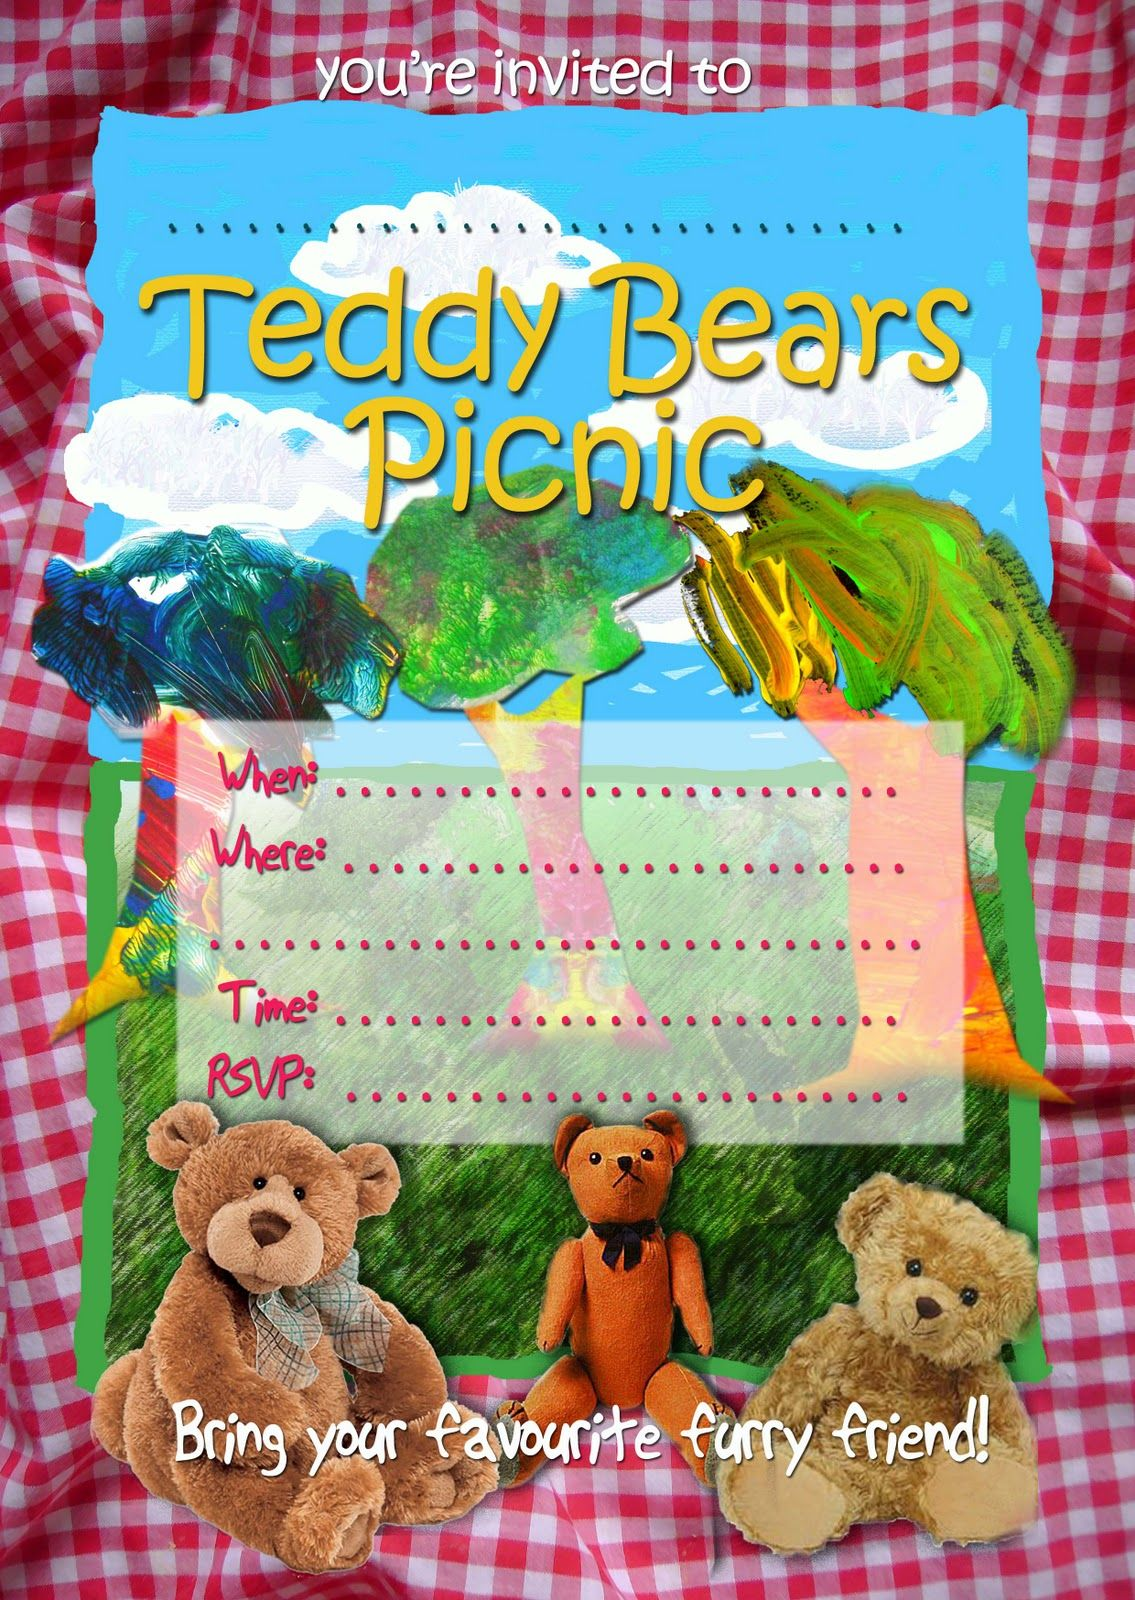 FREE Kids Party Invitations Teddy Bears Picnic Invitation